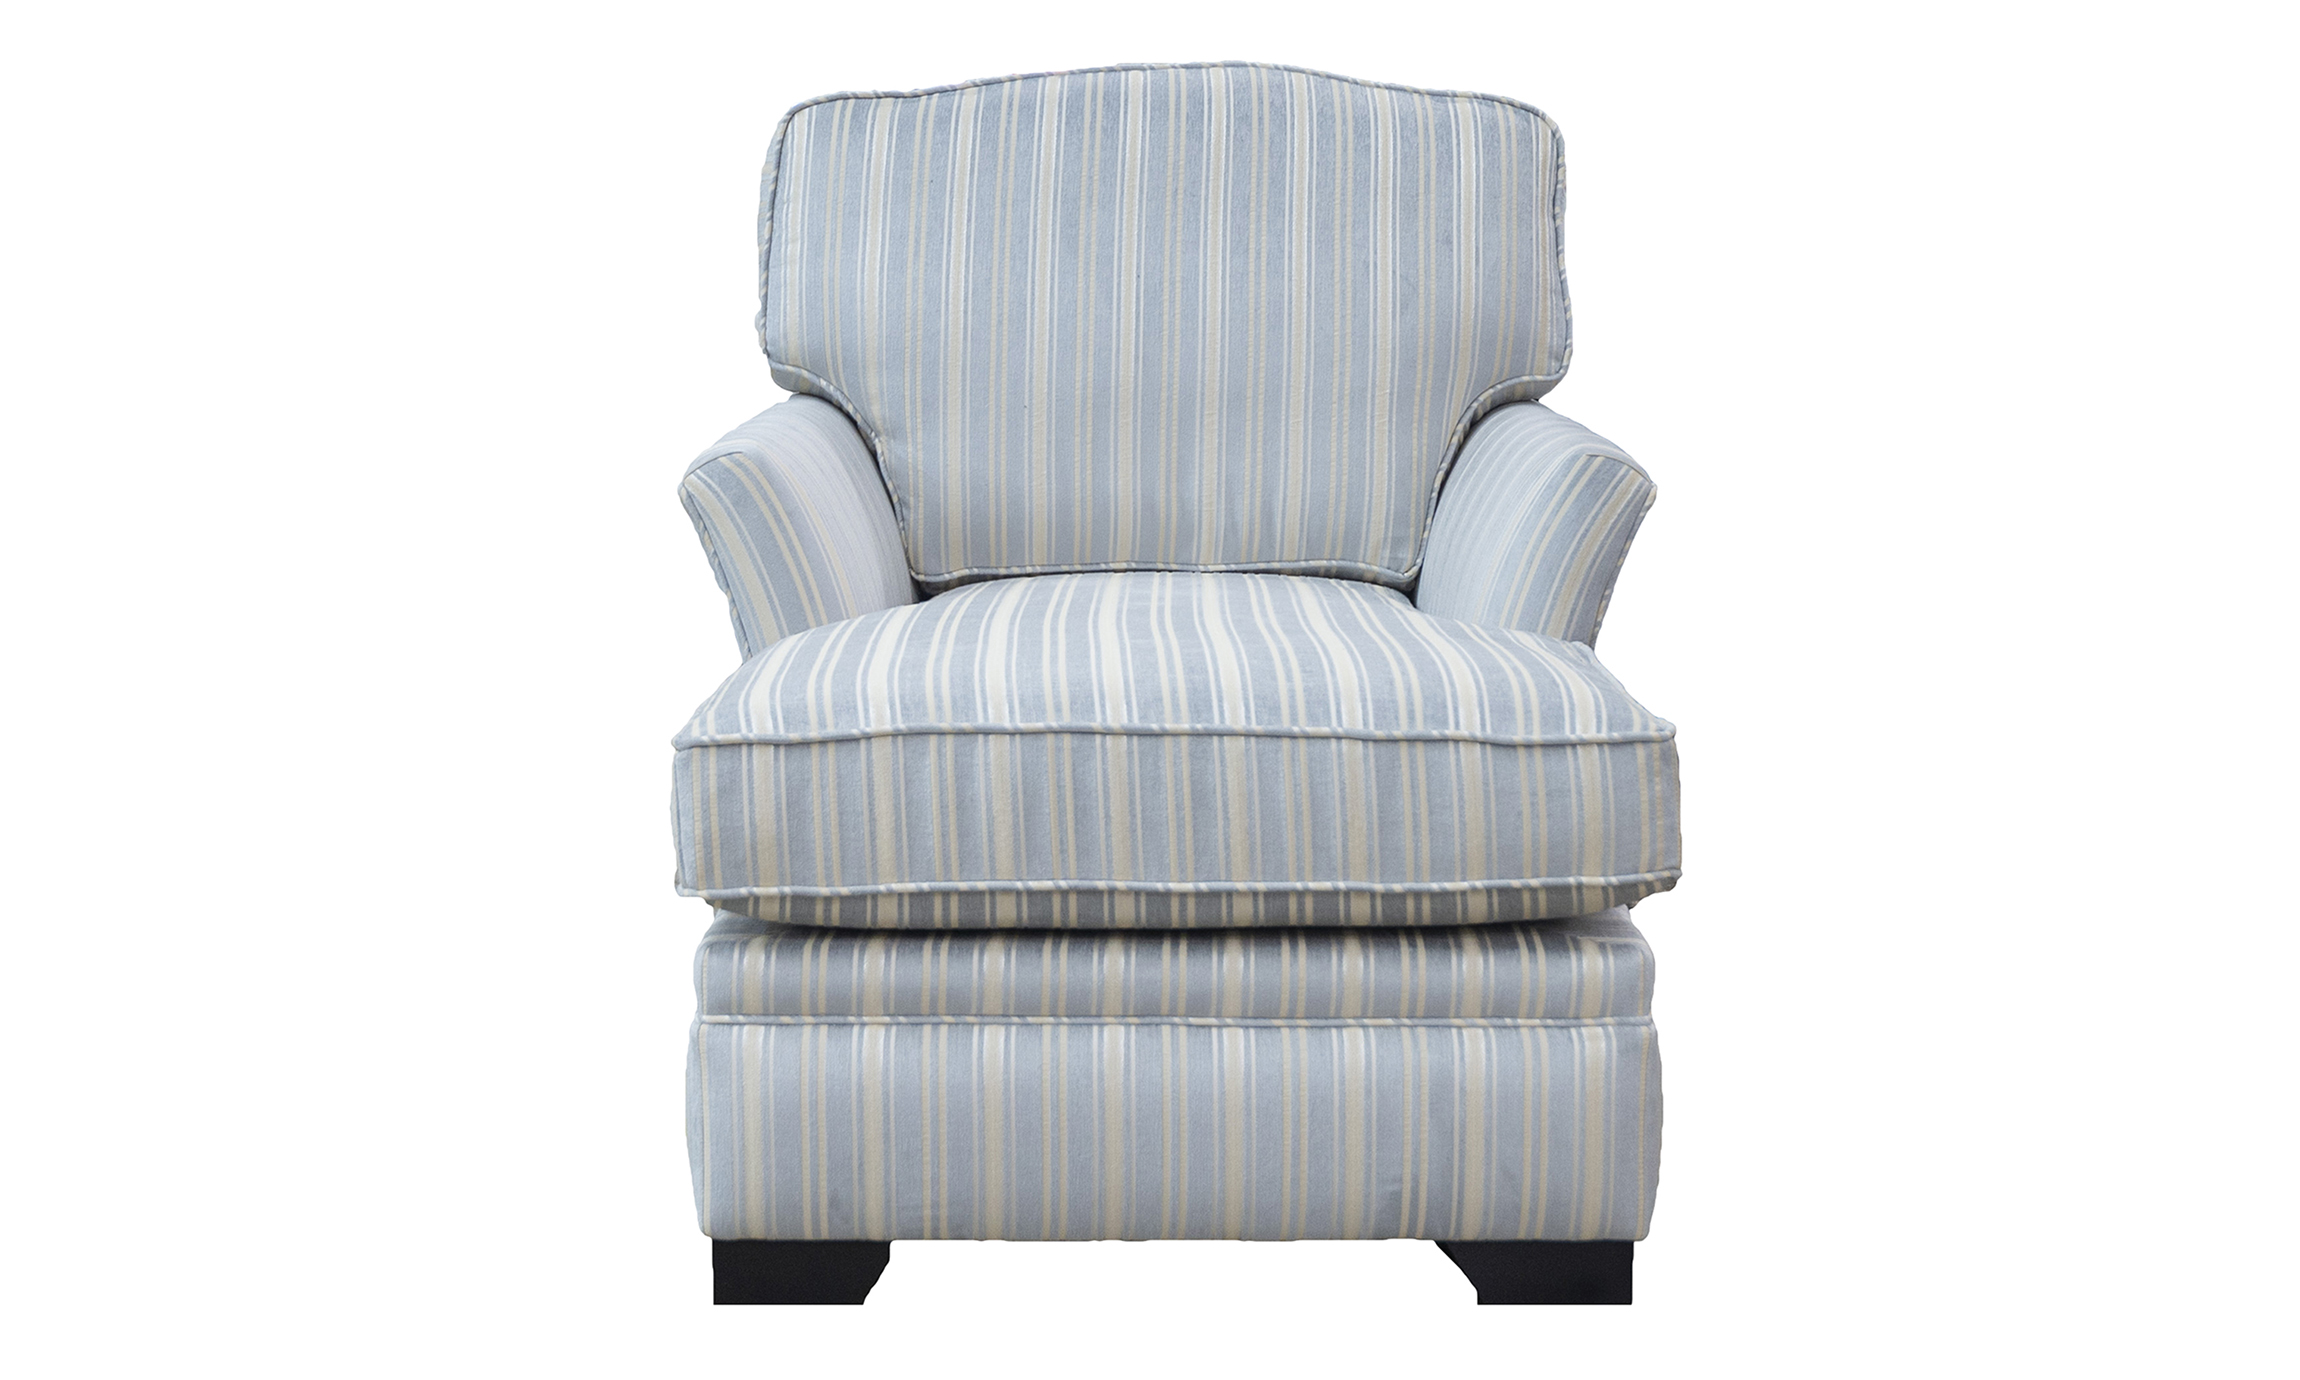 Othello Day Chair in Tolstoy Stripe Ocean, Platinium Collection Fabric